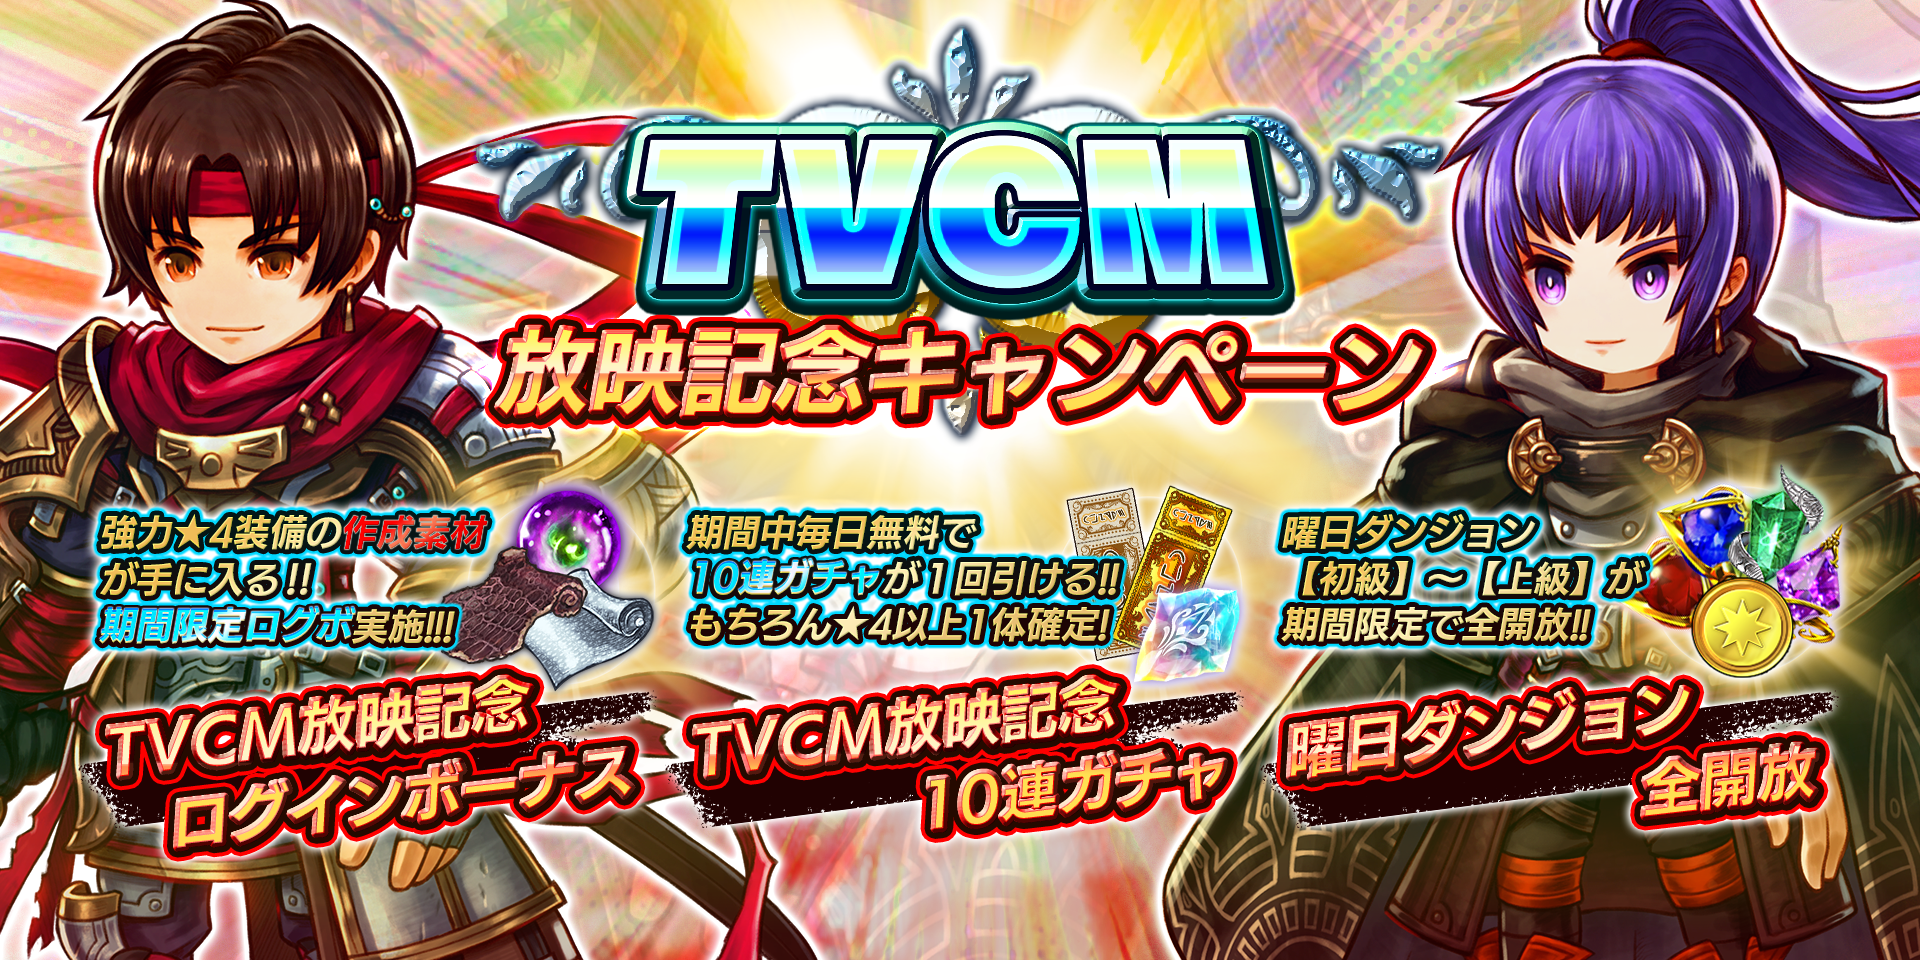 thm_arc_TVCMCP_181227.png